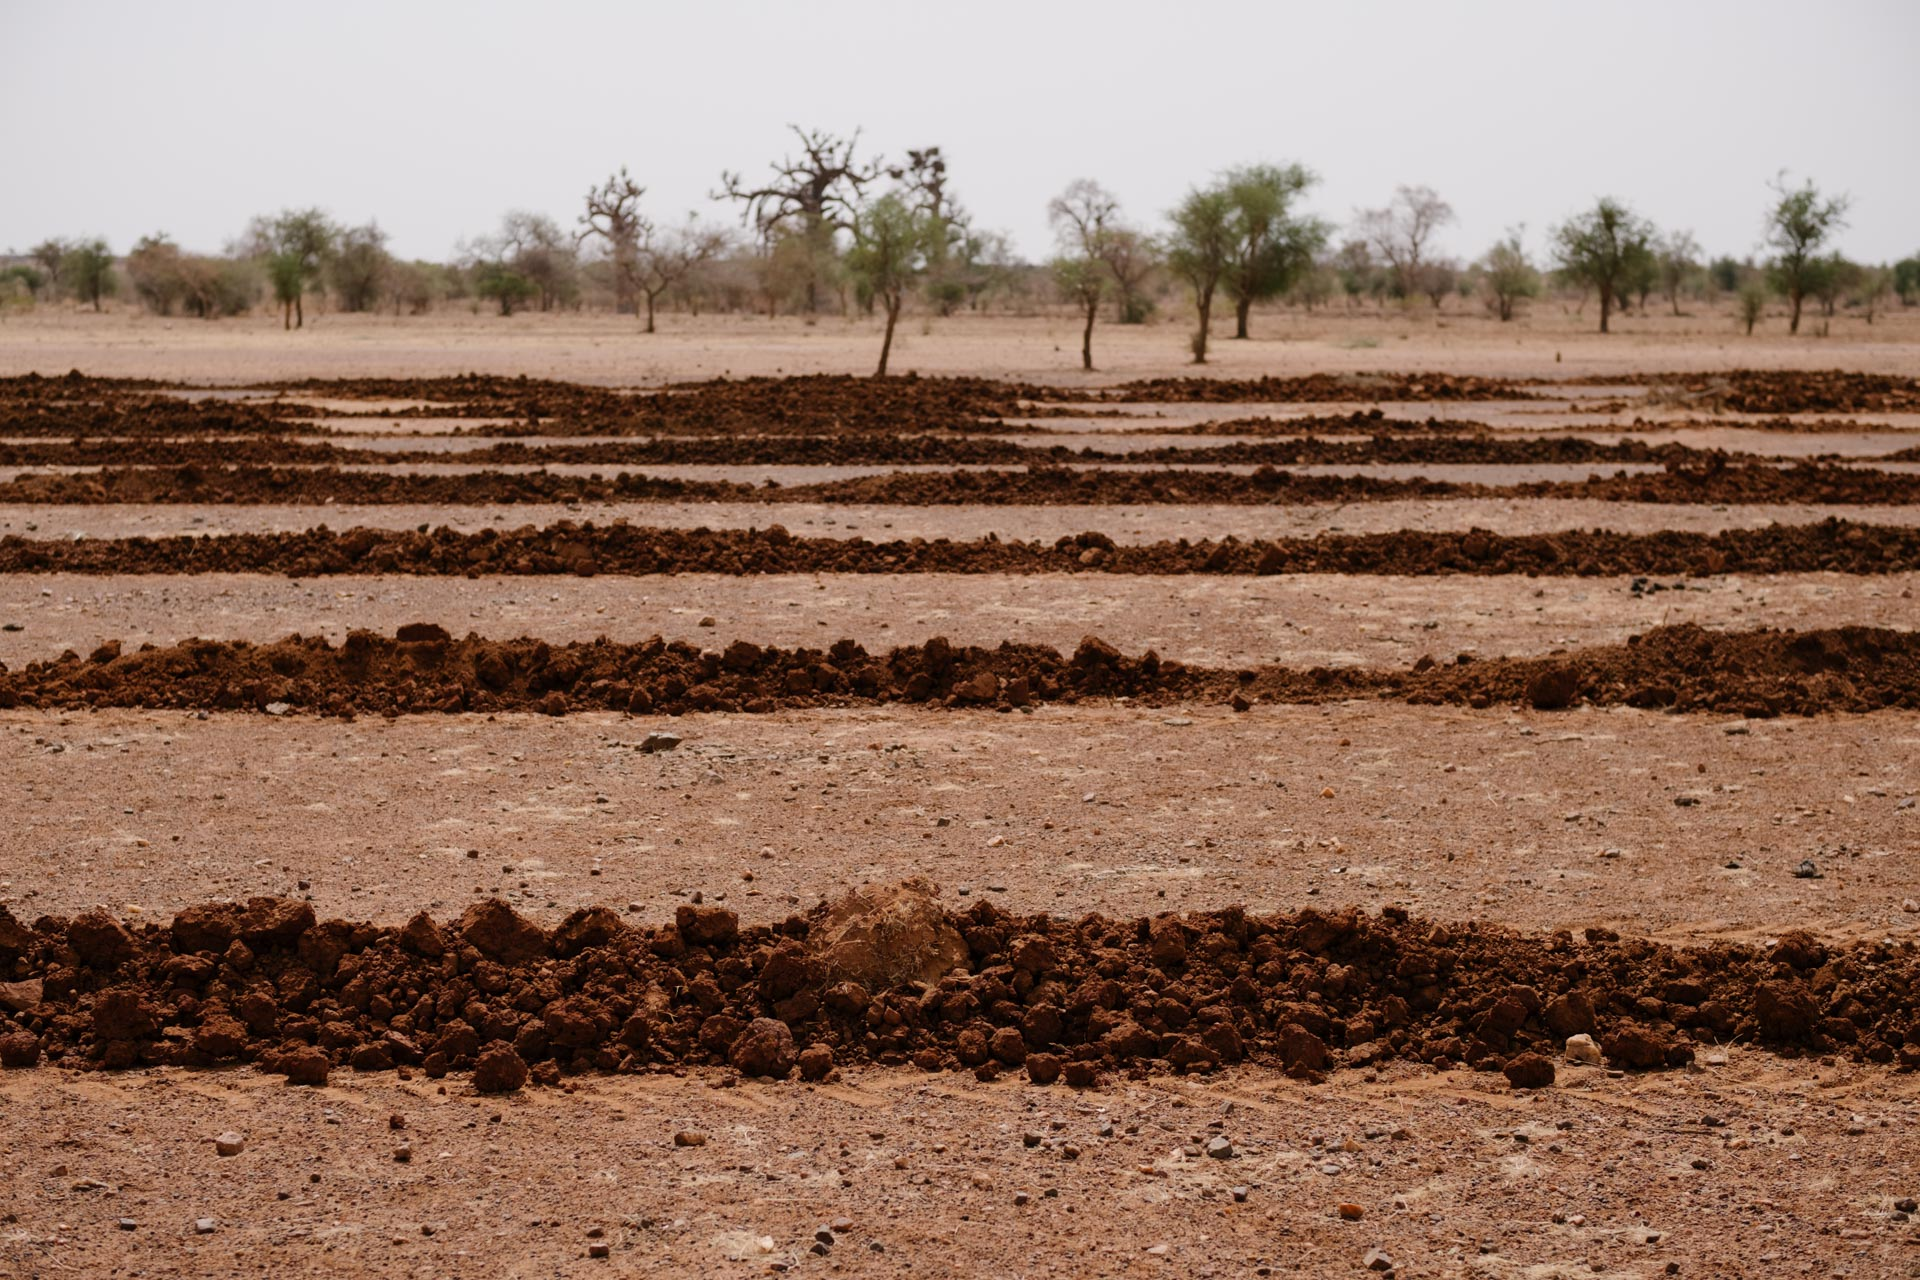 Burkina-Faso-Trees-Reforestation-Ecosia--24-of-38-